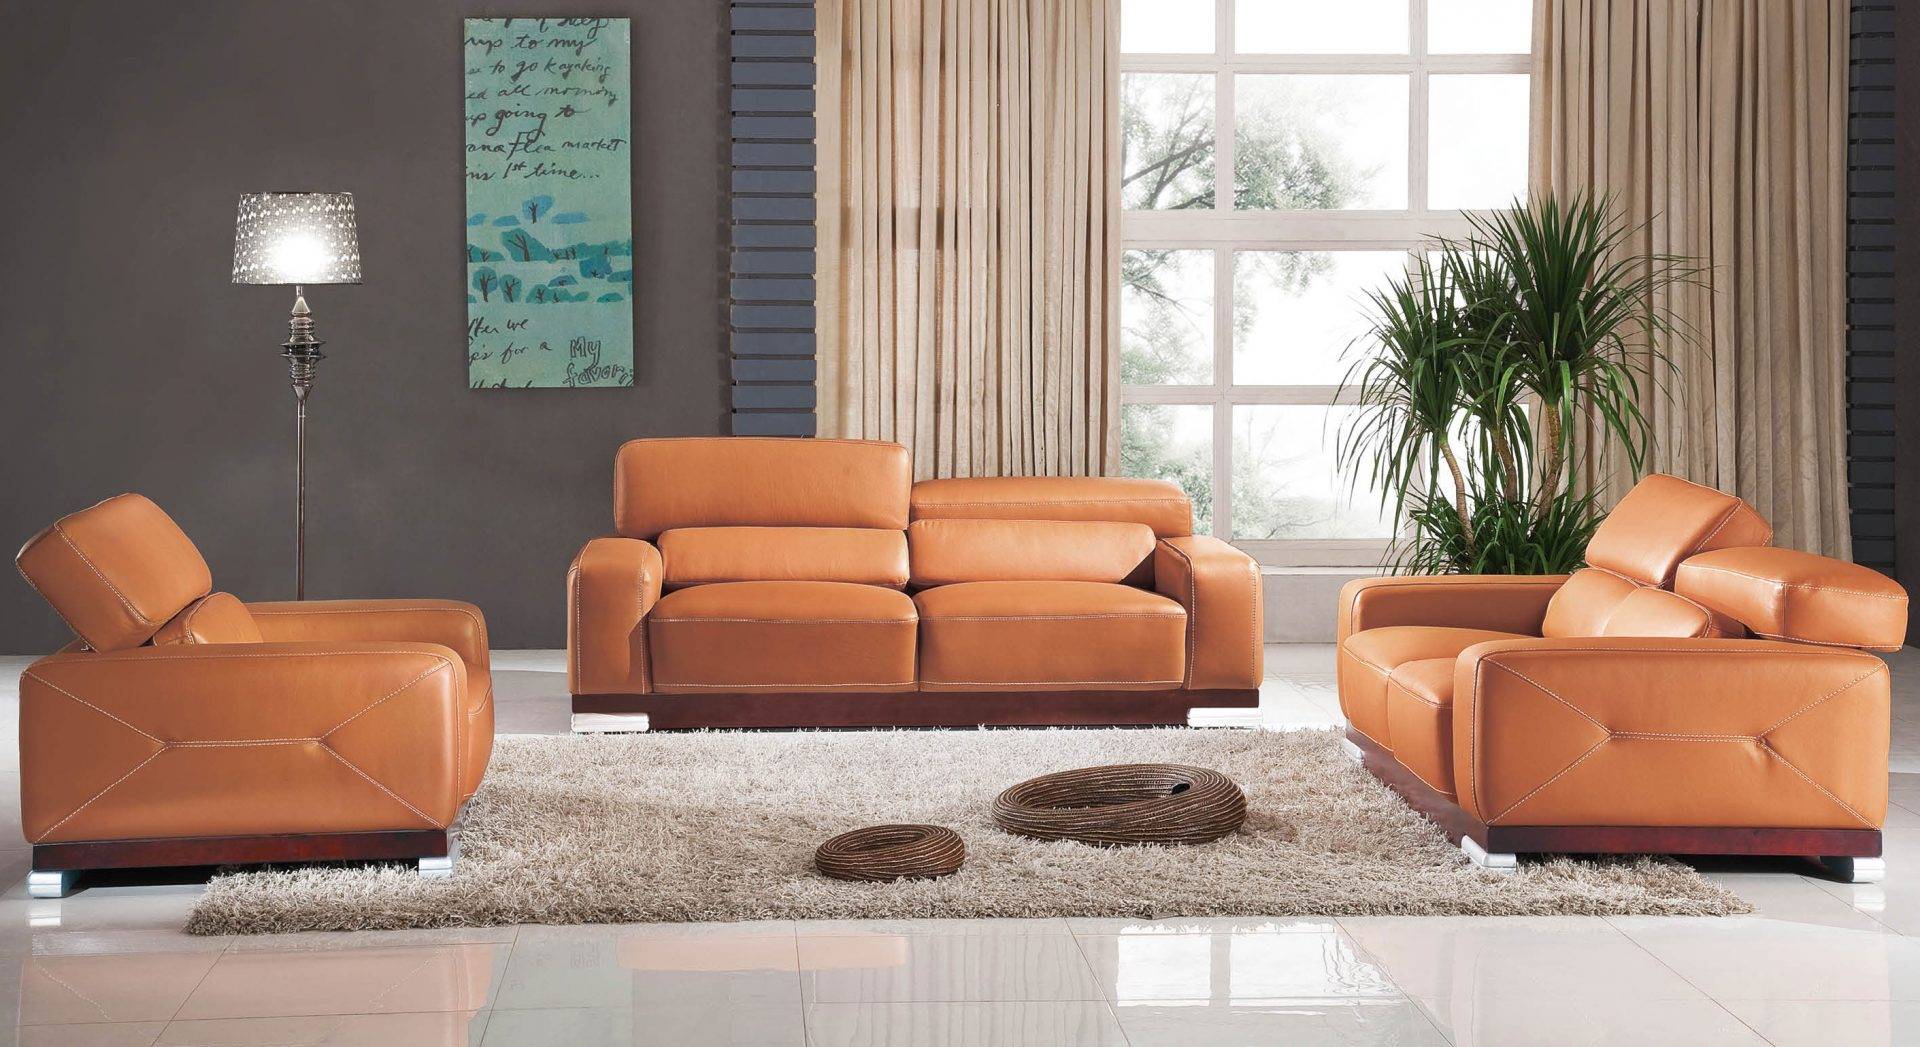 https://elegancedecor.com/wp-content/uploads/2013/06/Orange-Sofa-Set-3-piece.jpg